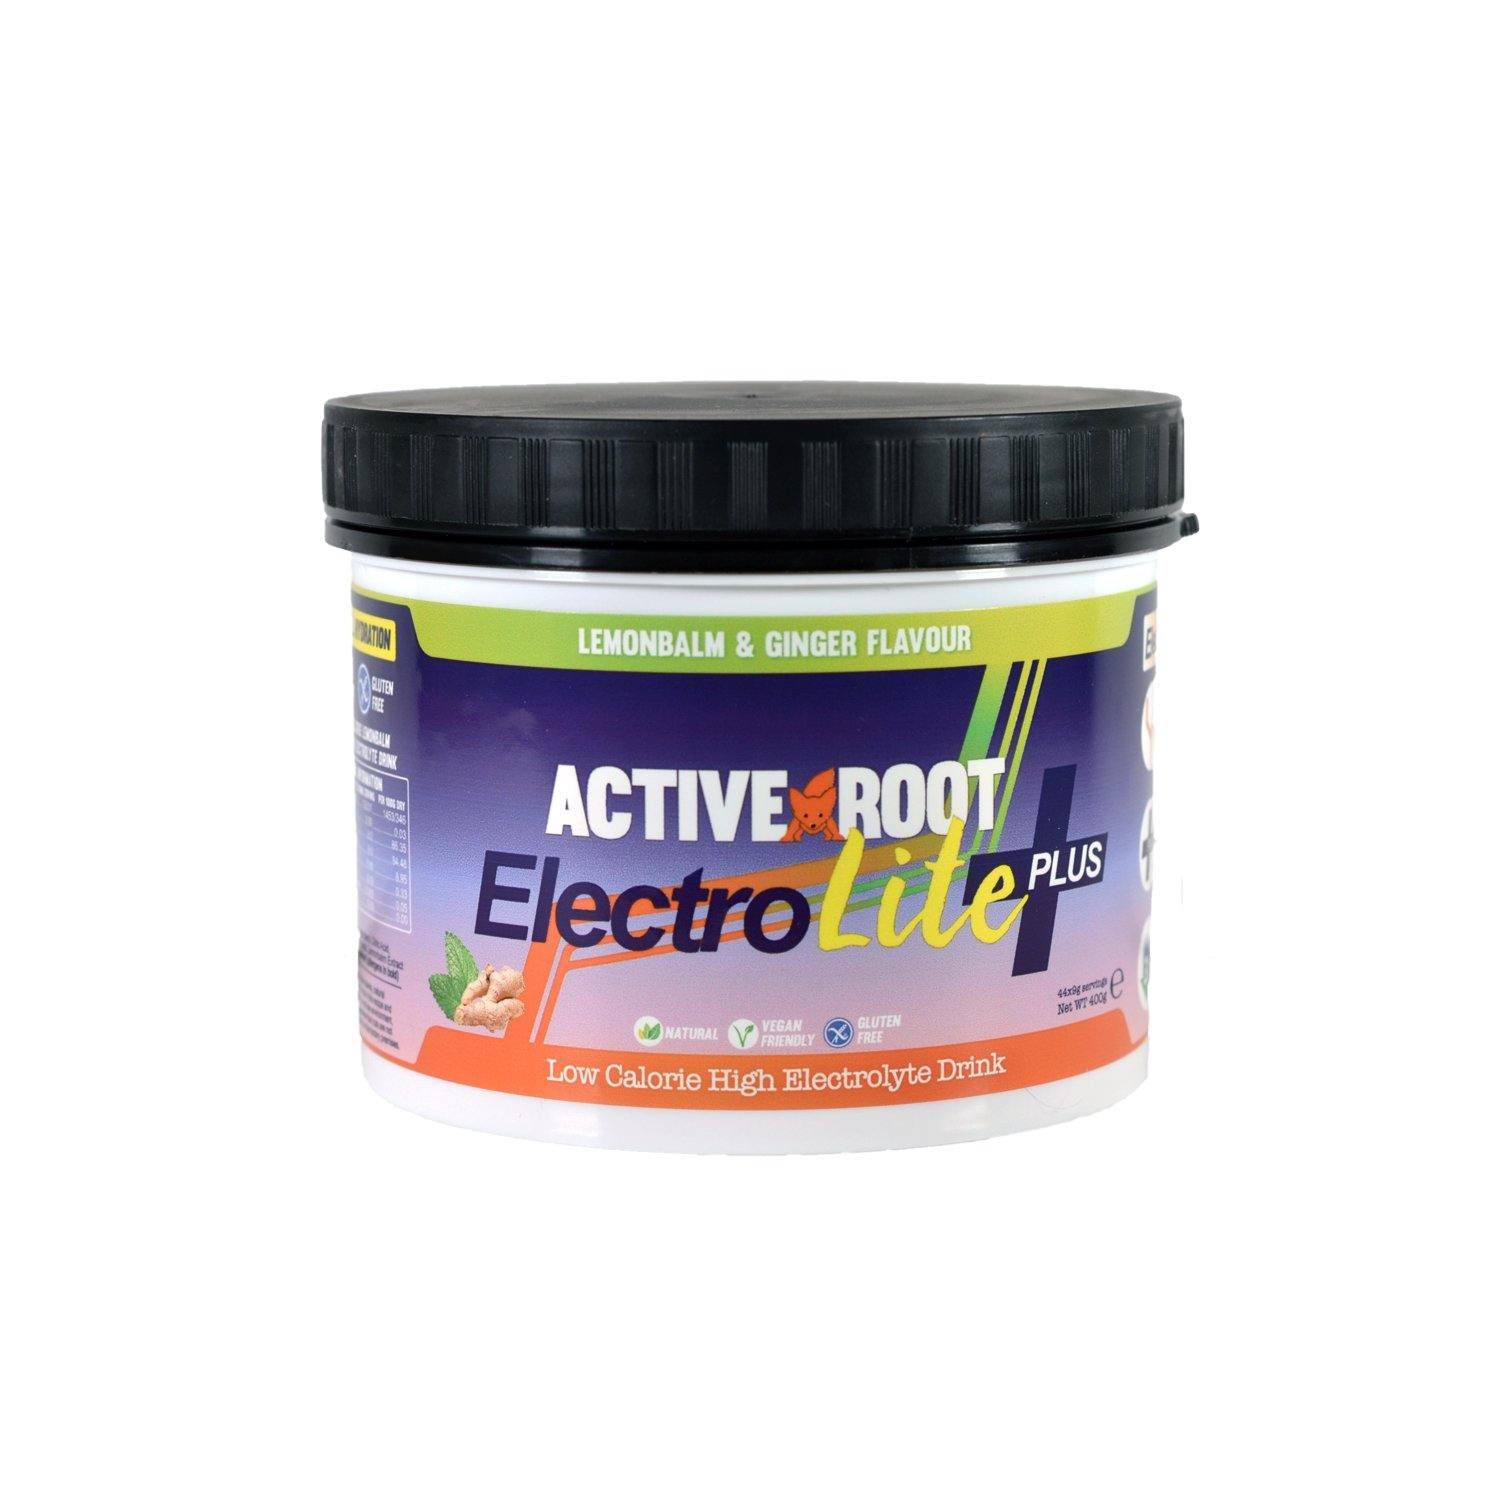 Lemonbalm ElectroLite+ Tub (44 servings) - Active Root